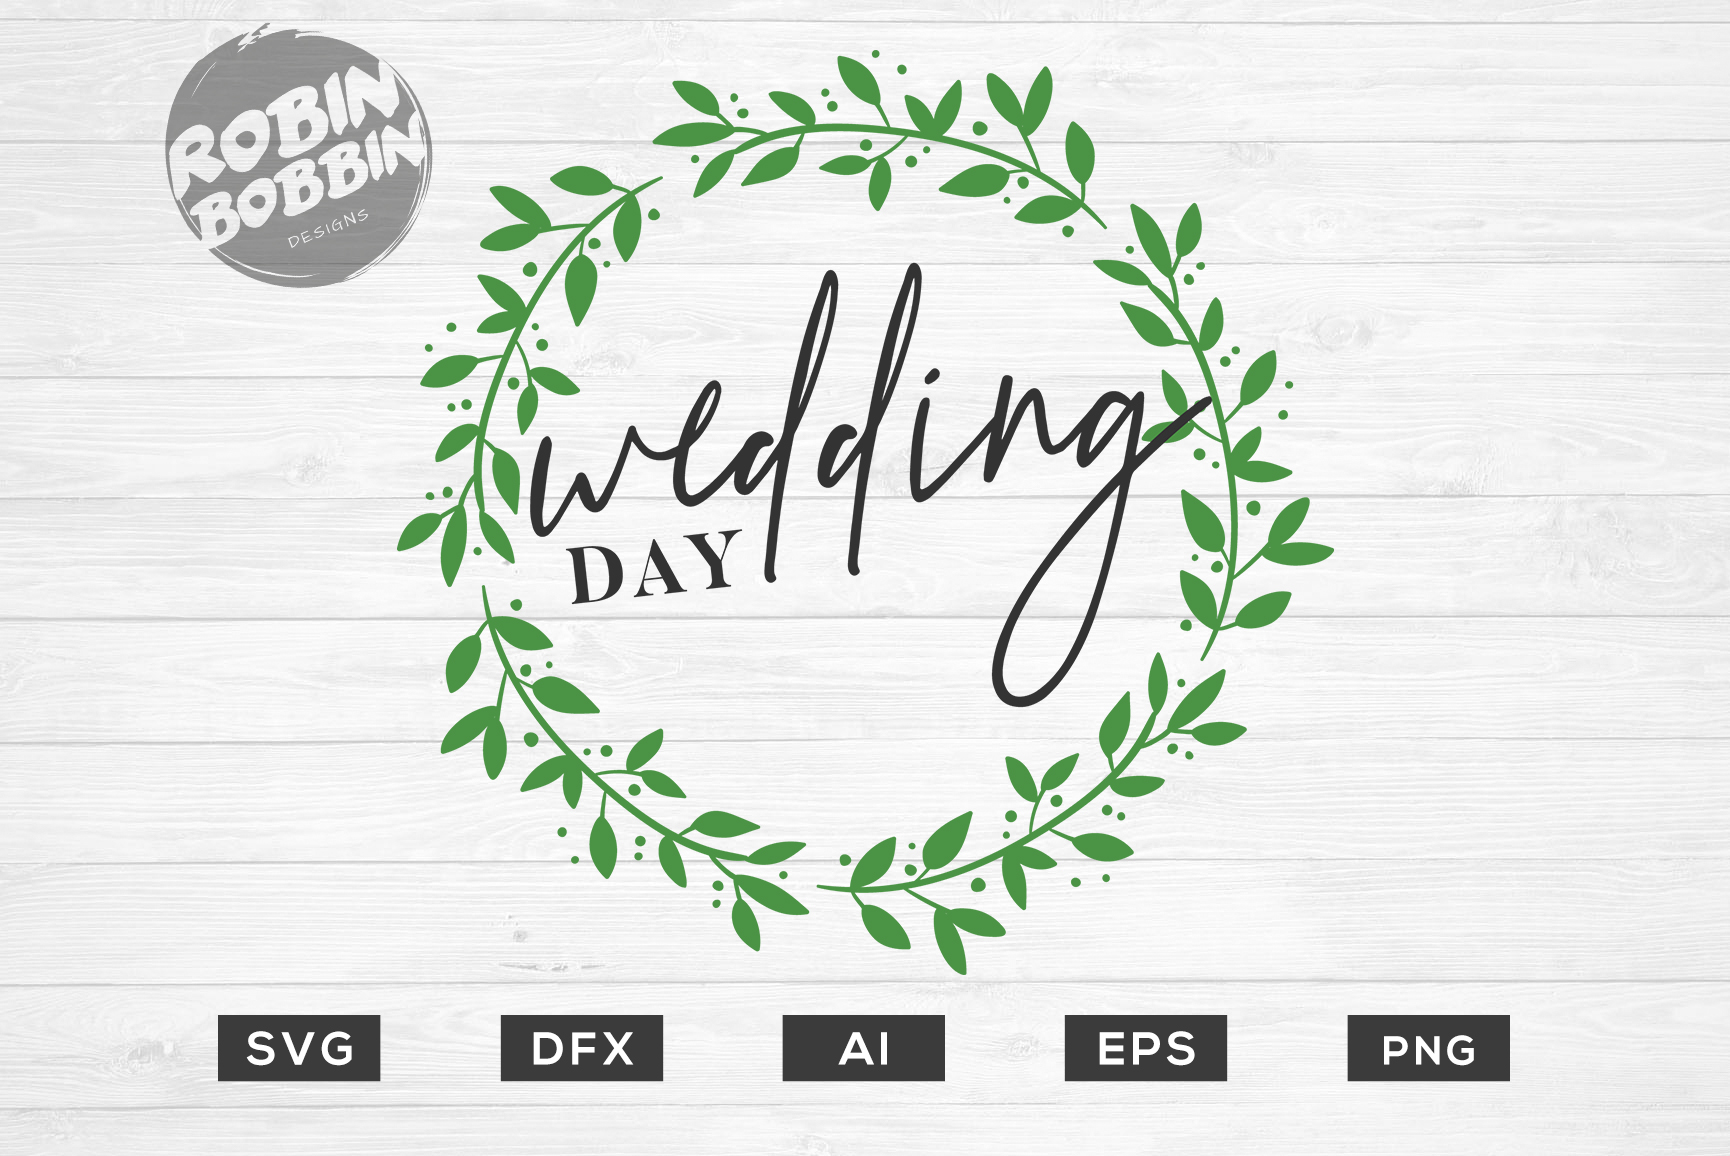 Wedding Day SVG File - Wedding SVG PNG EPS Cutting Files example image 1